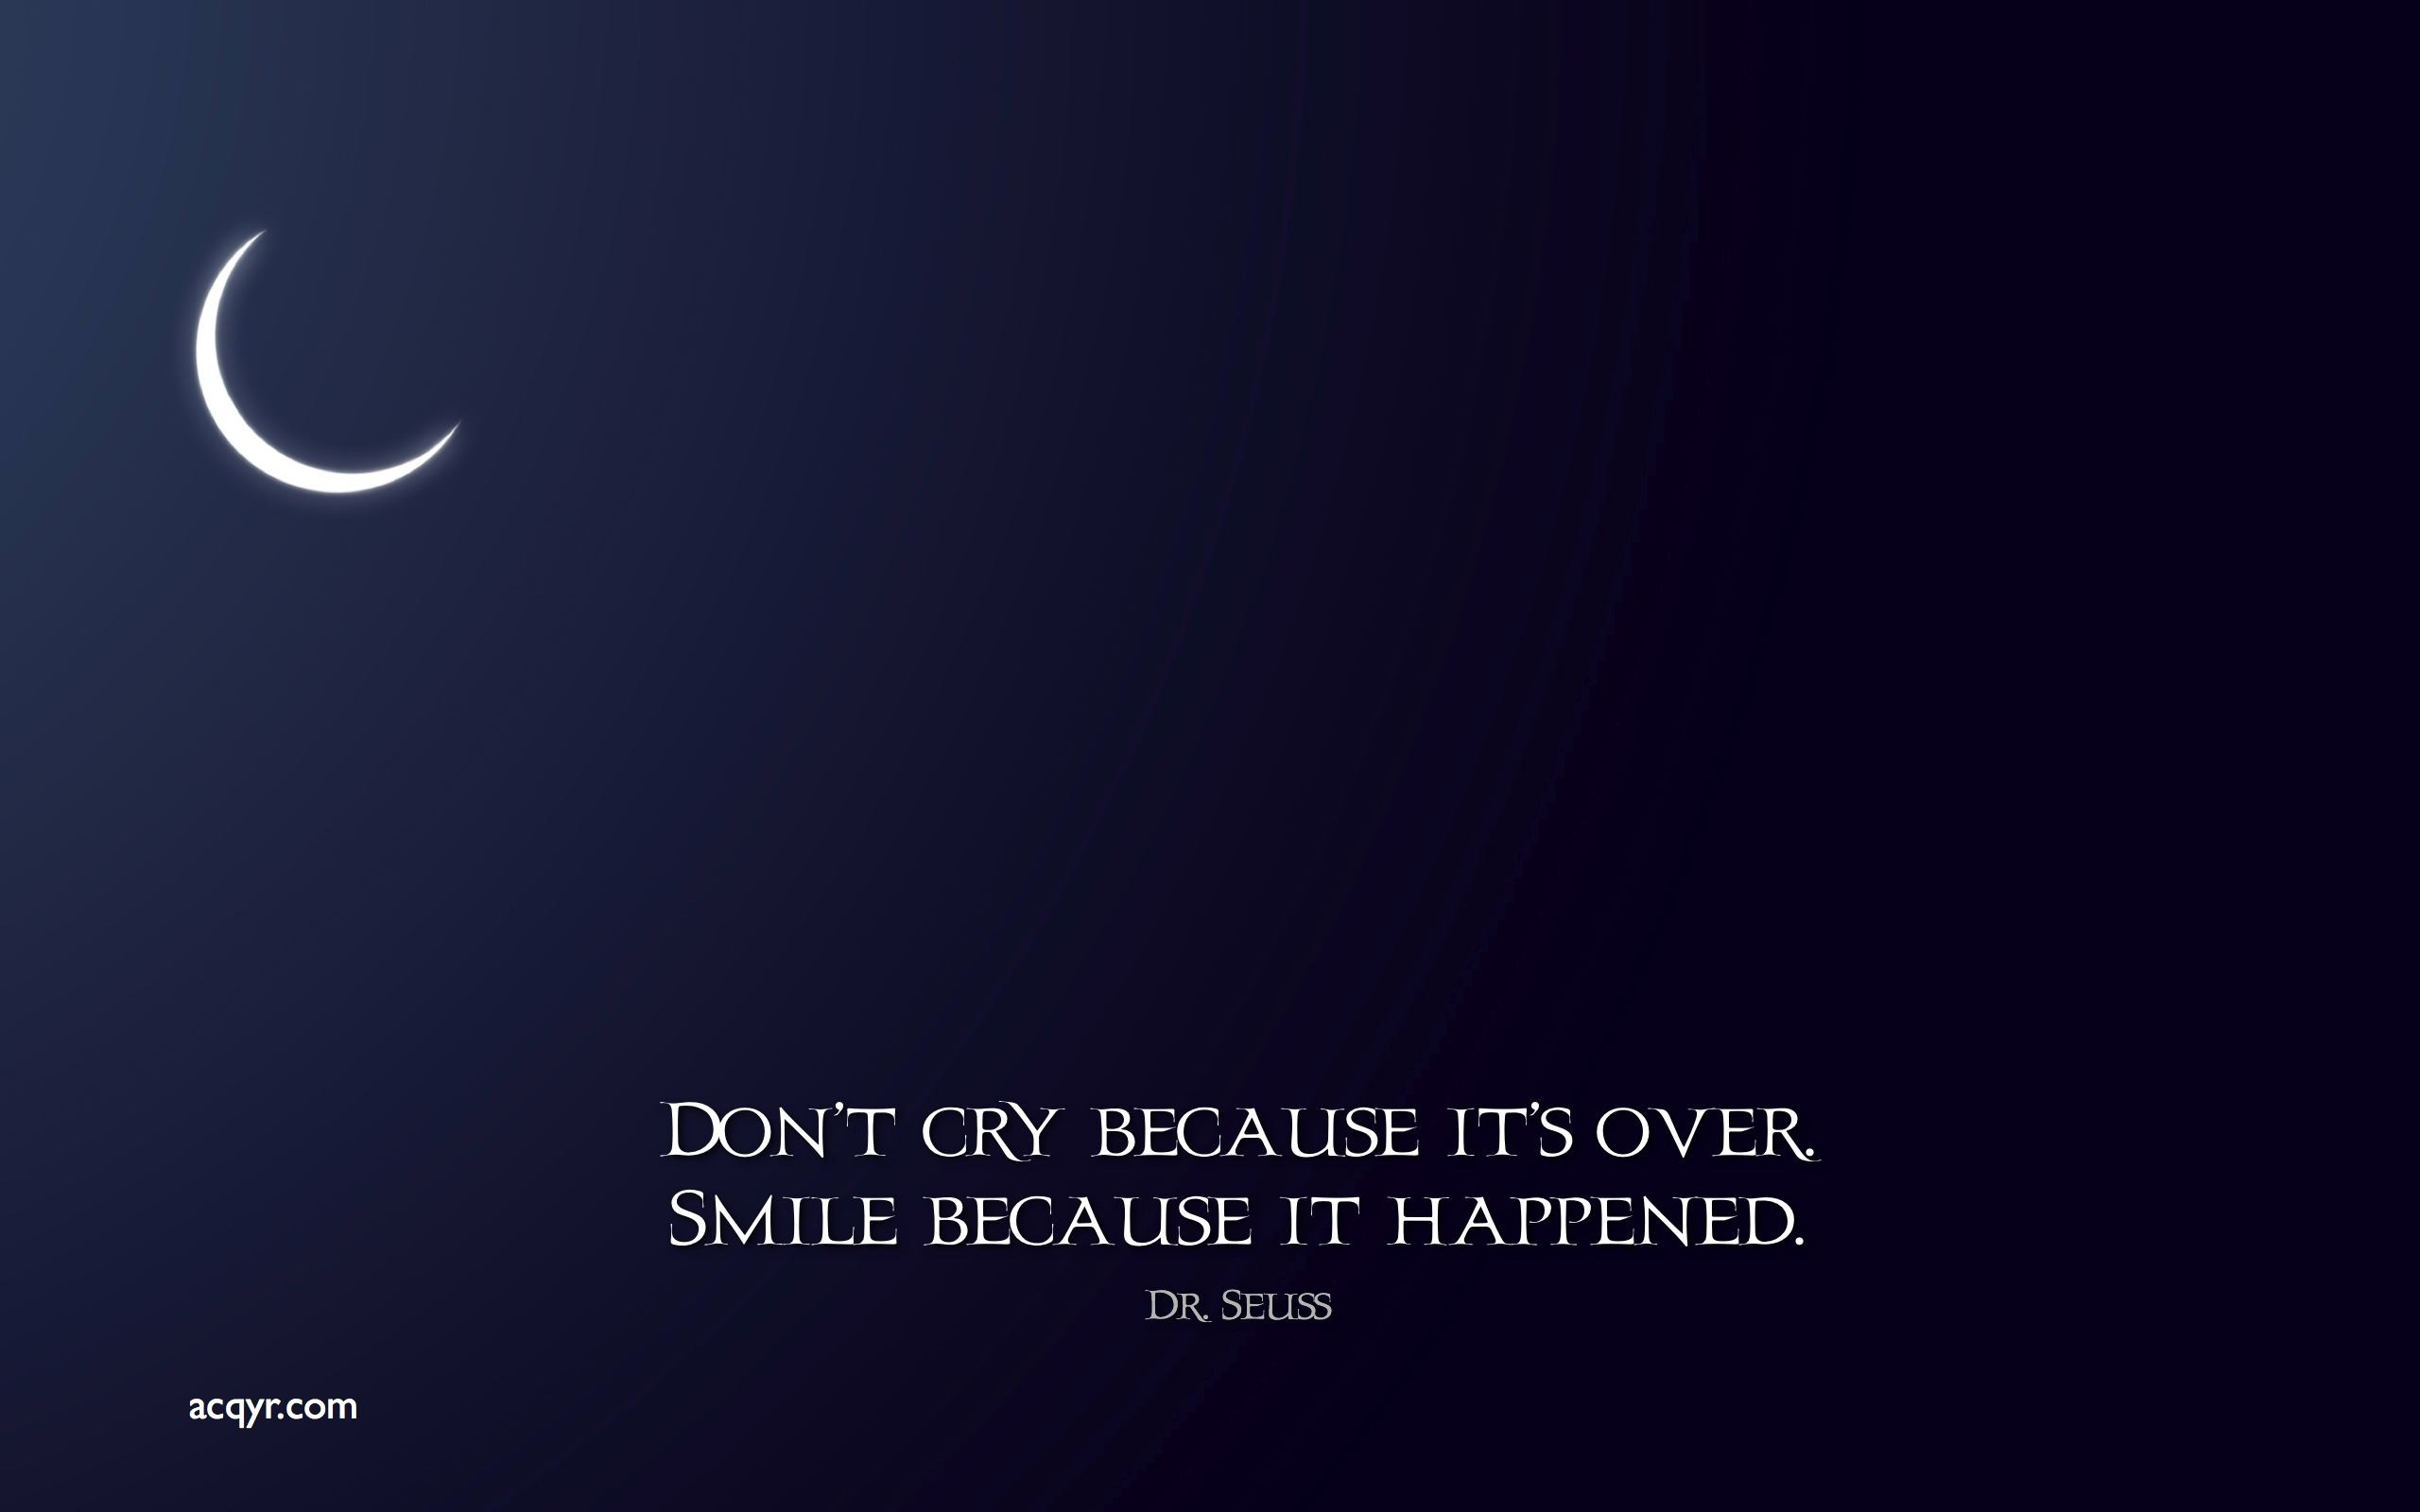 harry potter quote images